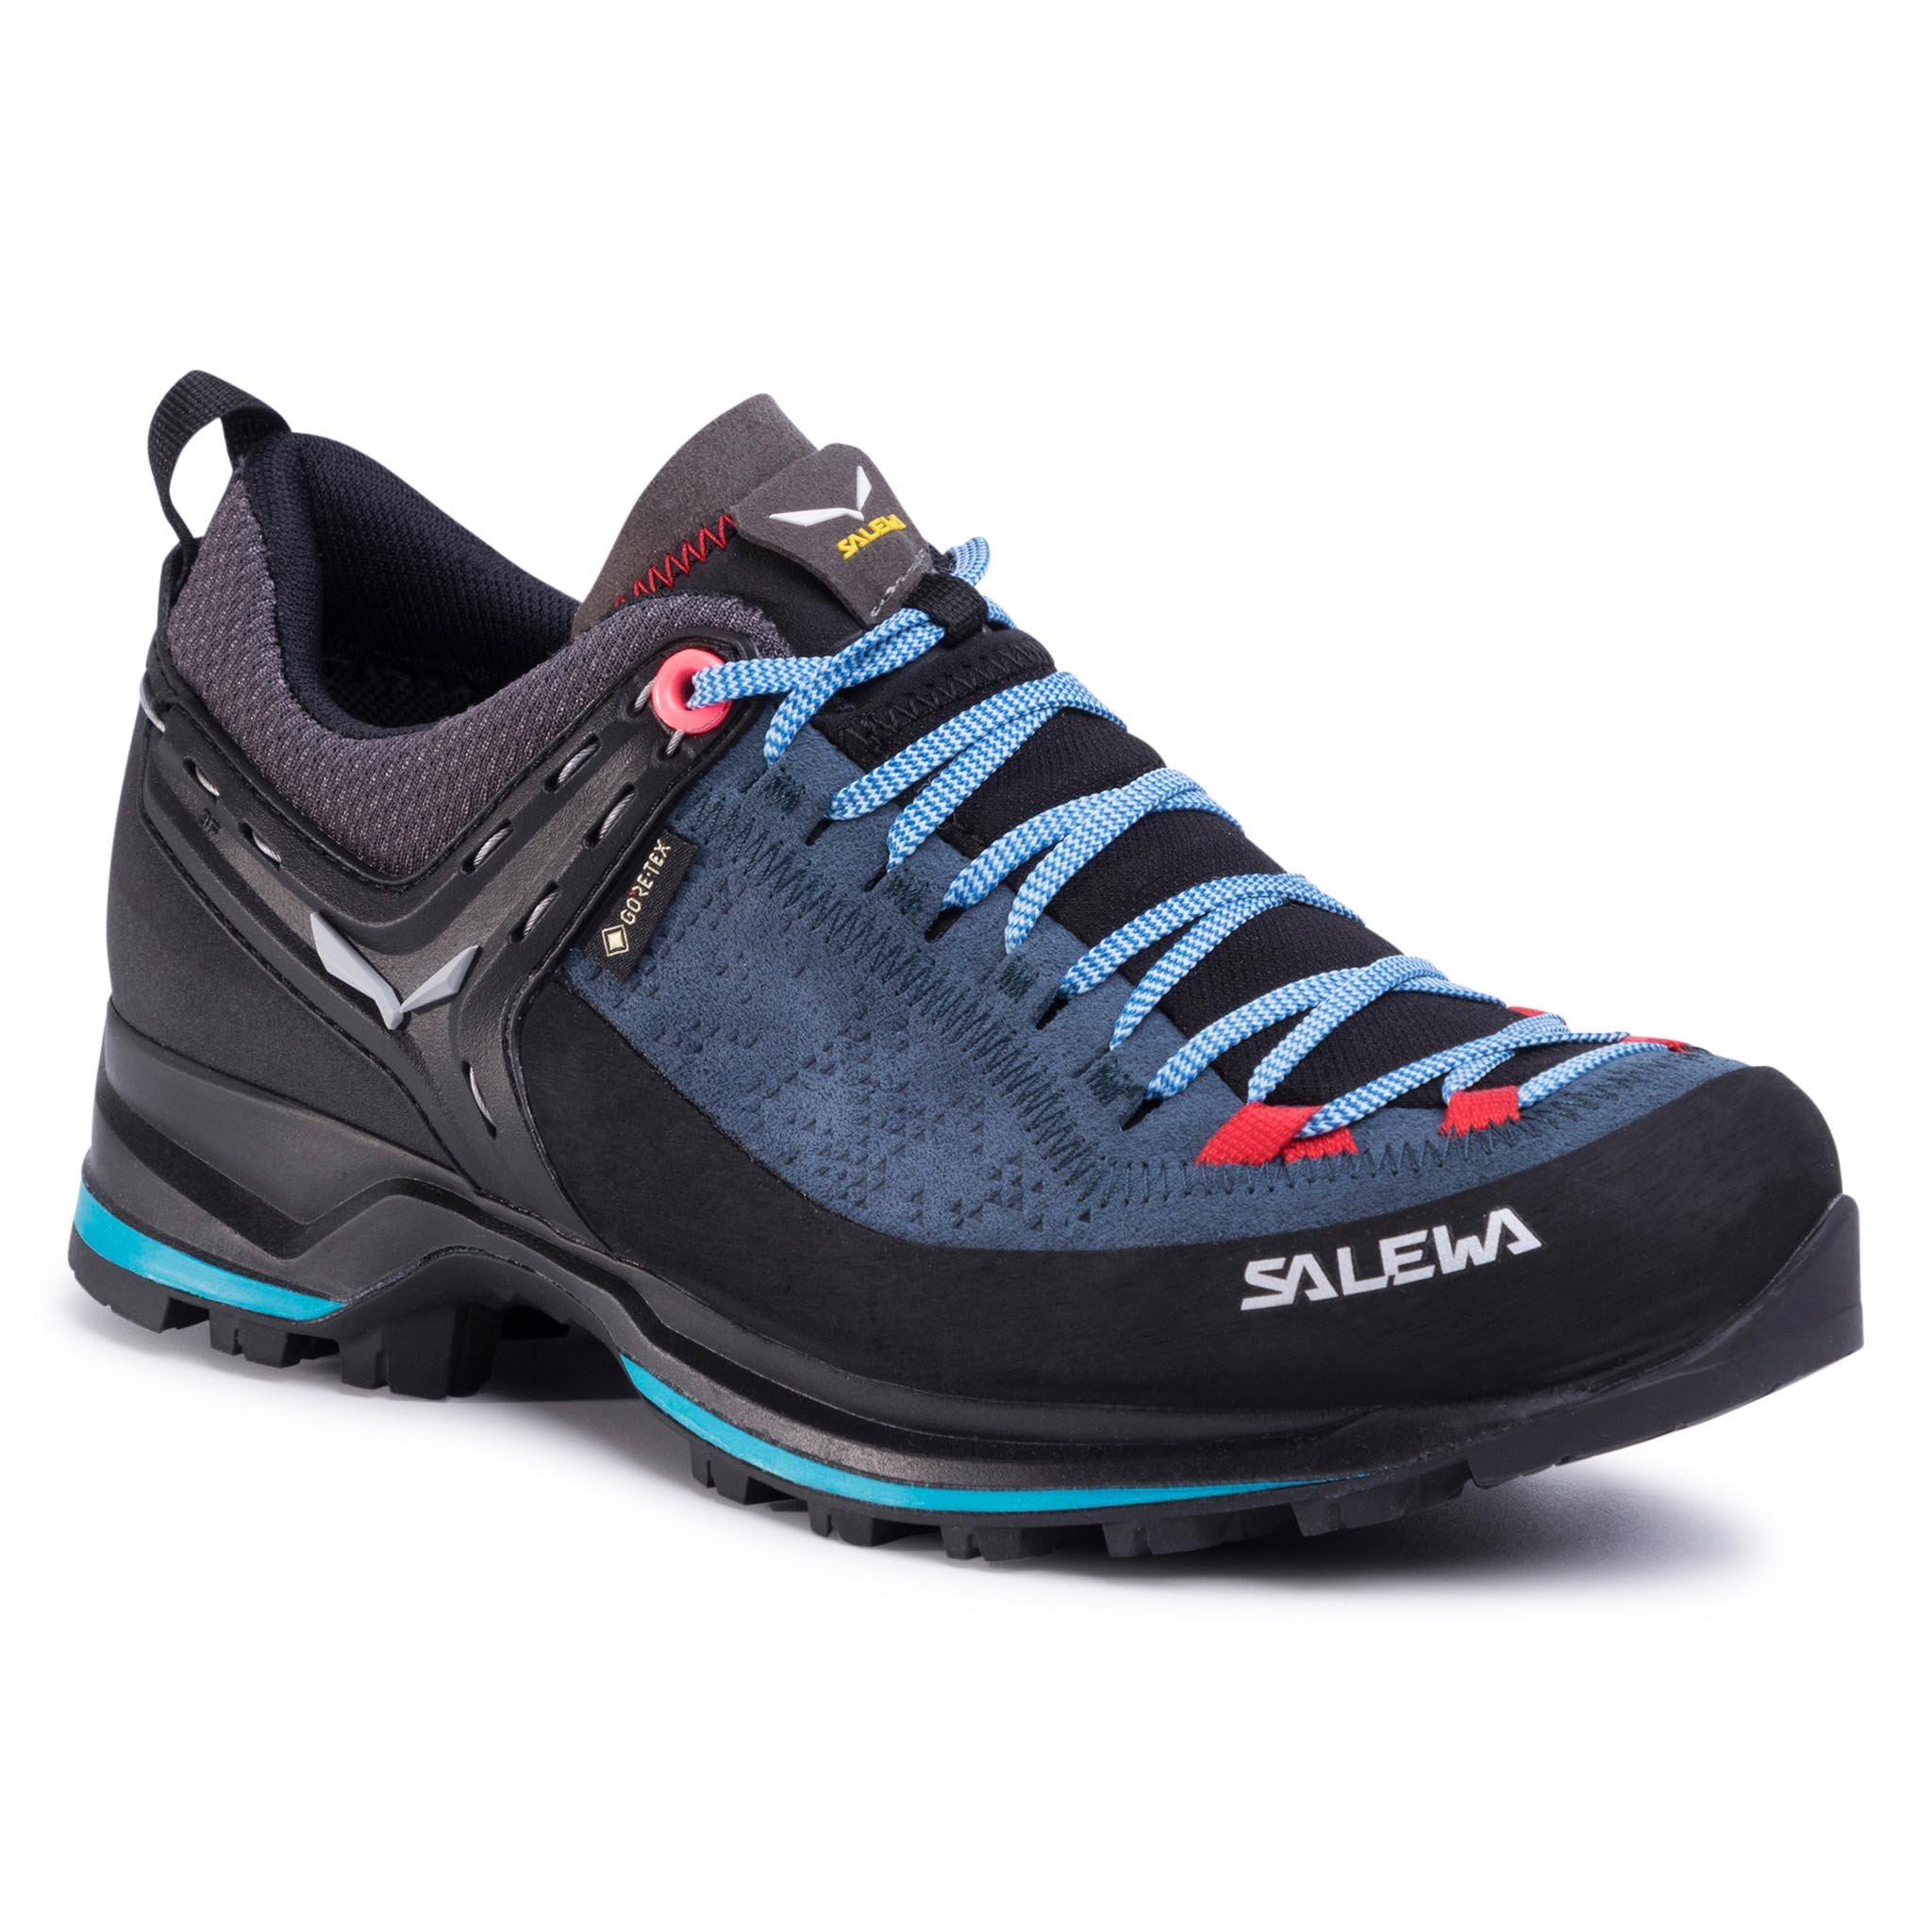 Trekkings Salewa - Ws Mtn Trainer 2 Gtx Gore-Tex 61358-8679 Dark Denim/Fluo Coral imagine epantofi.ro 2021